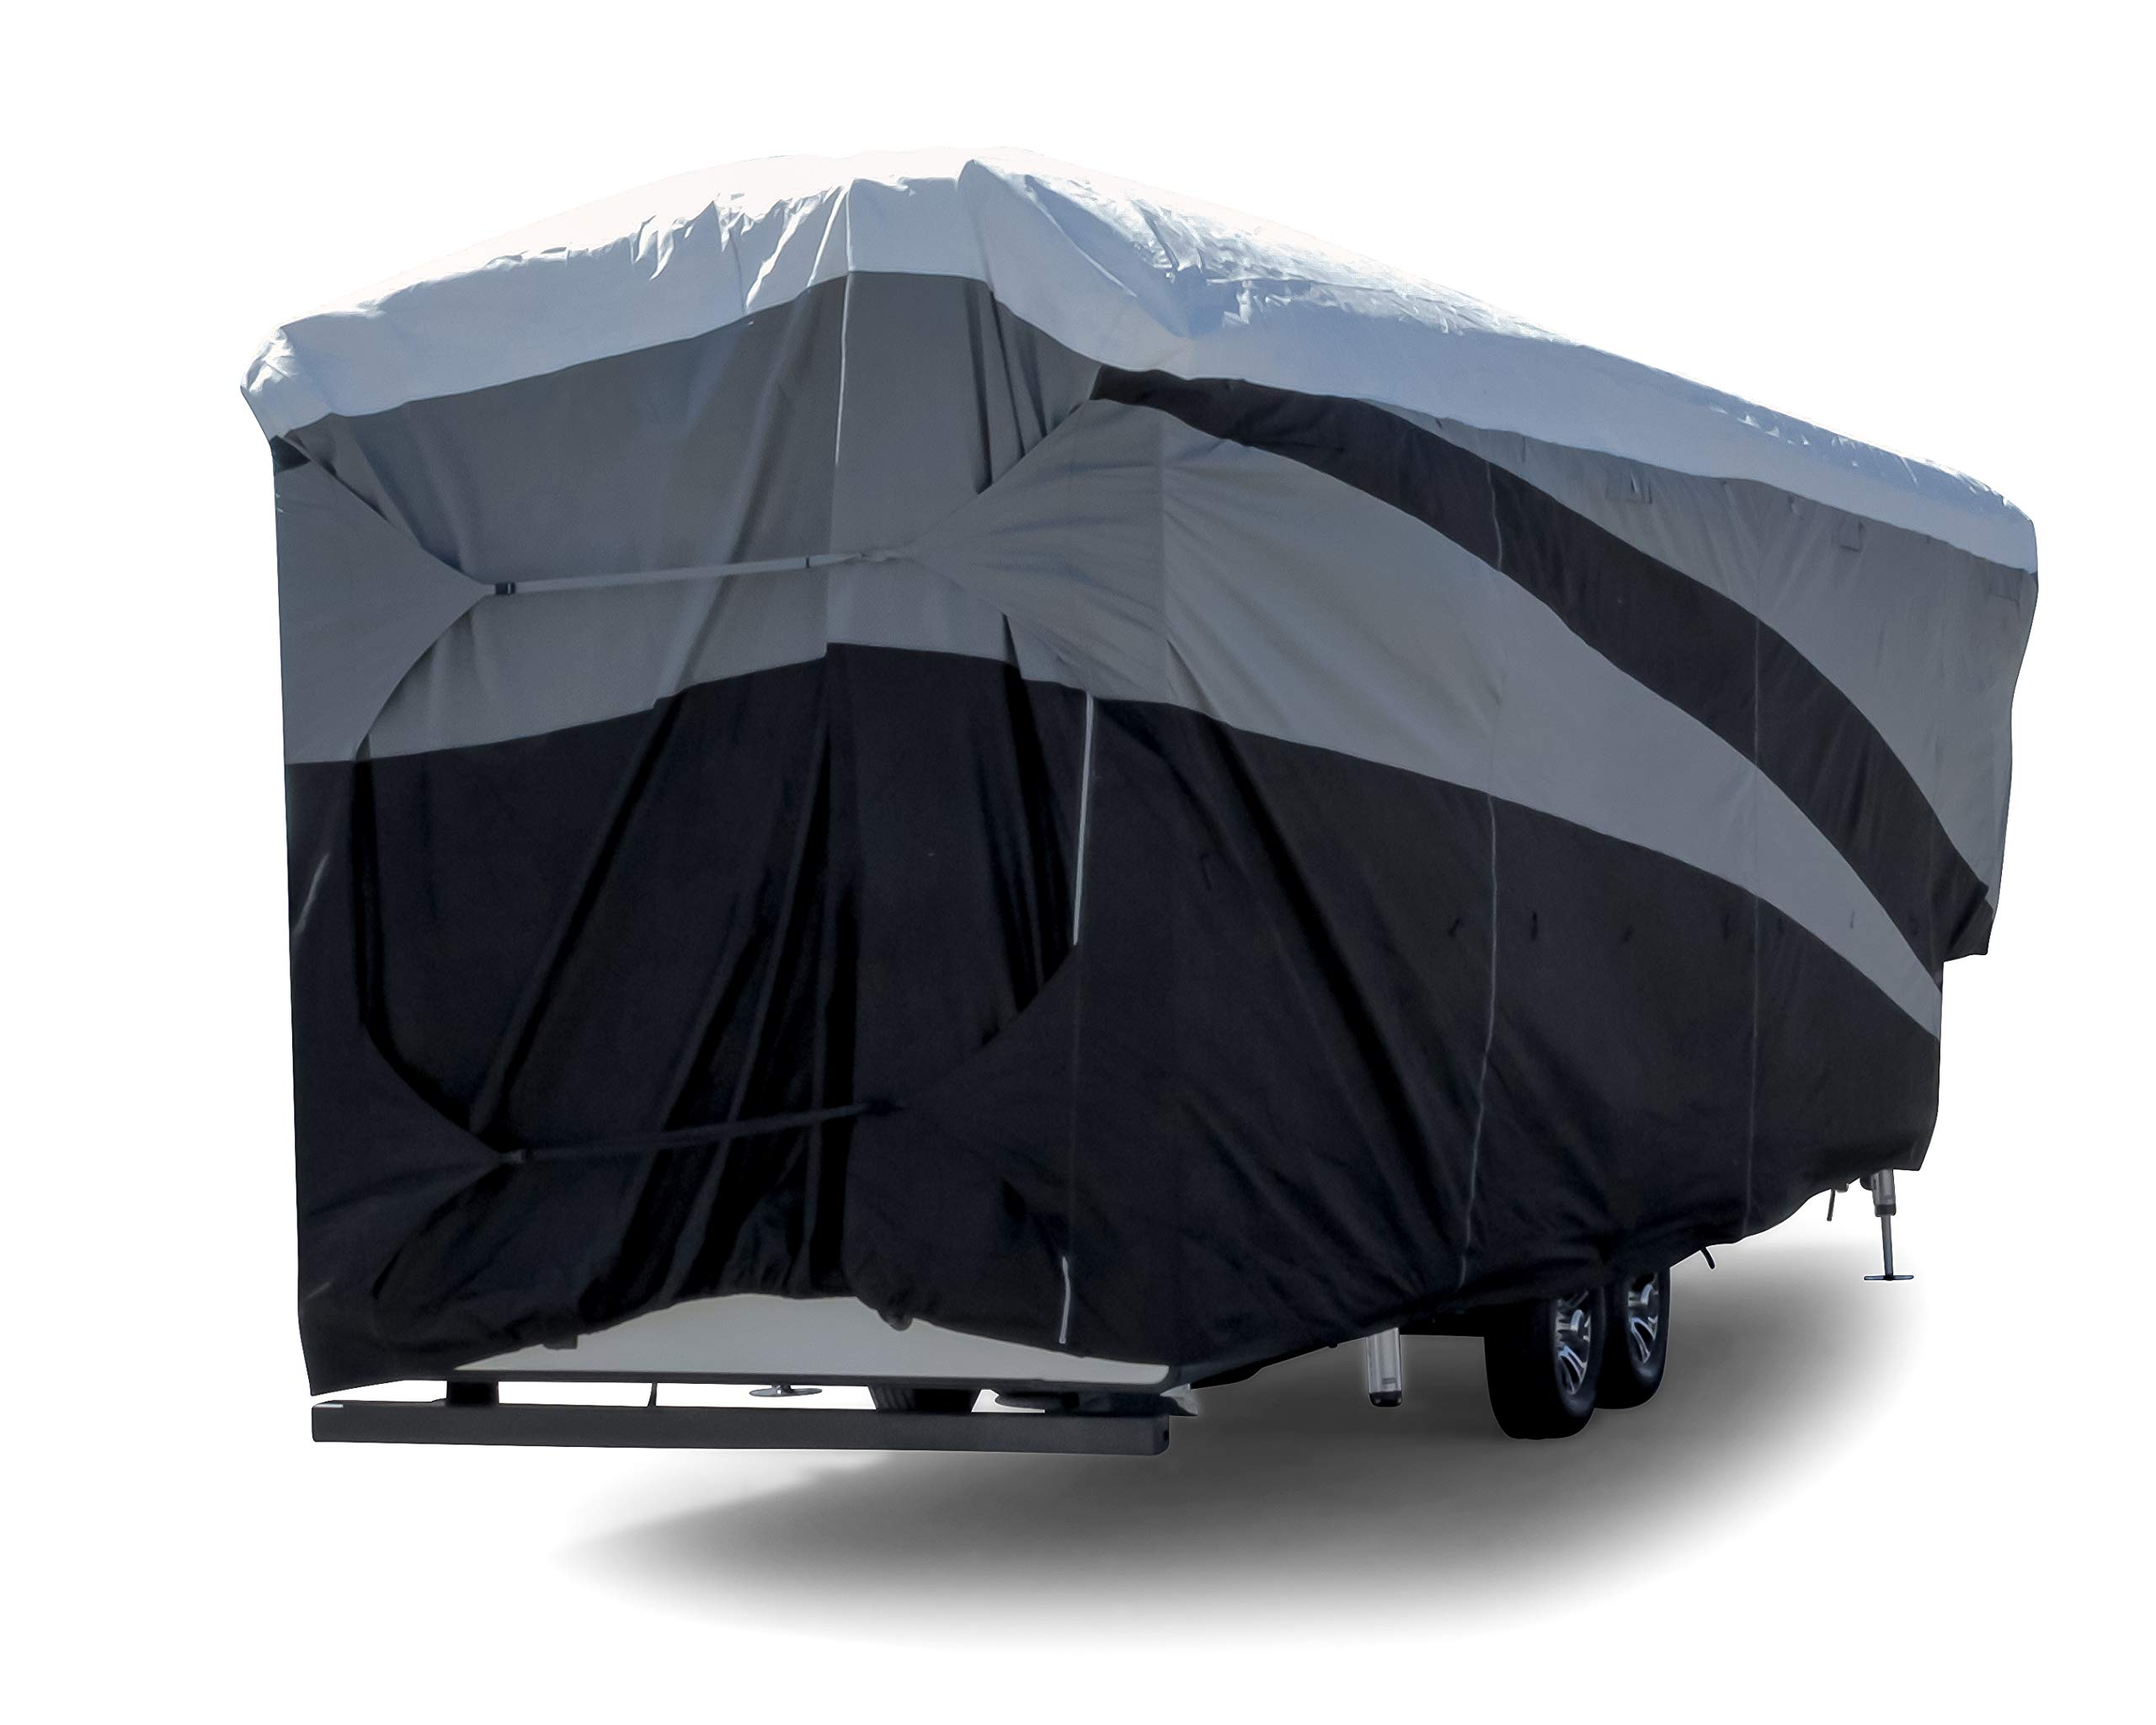 Camco ULTRAGuard Supreme RV Cover-Extremely Durable Design Fits Fifth Wheel Trailers 34' -37', Weatherproof with UV Protection and Dupont Tyvek Top (56150) by Camco (Image #2)